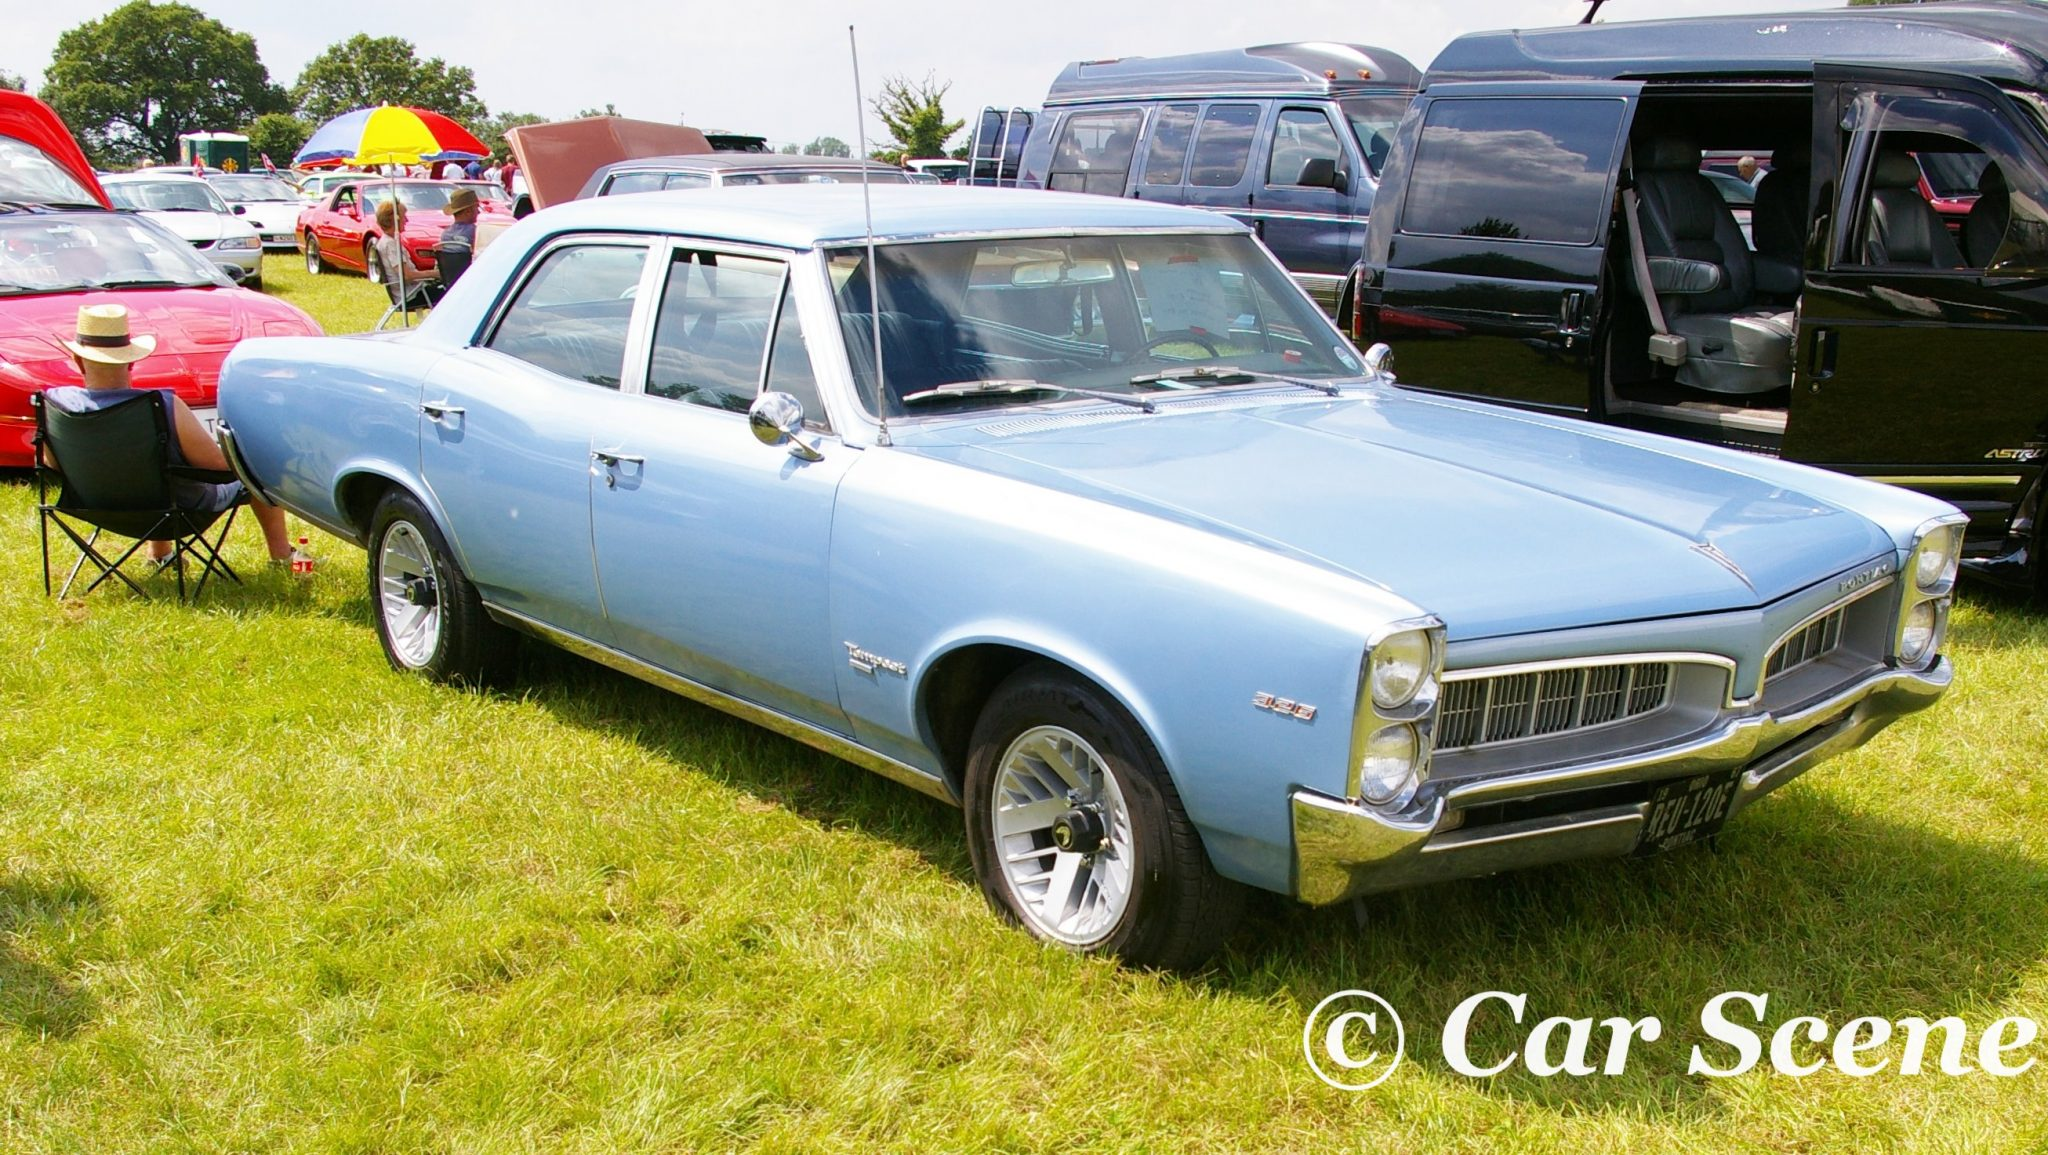 1960s Pontiac Tempest front three quarters view